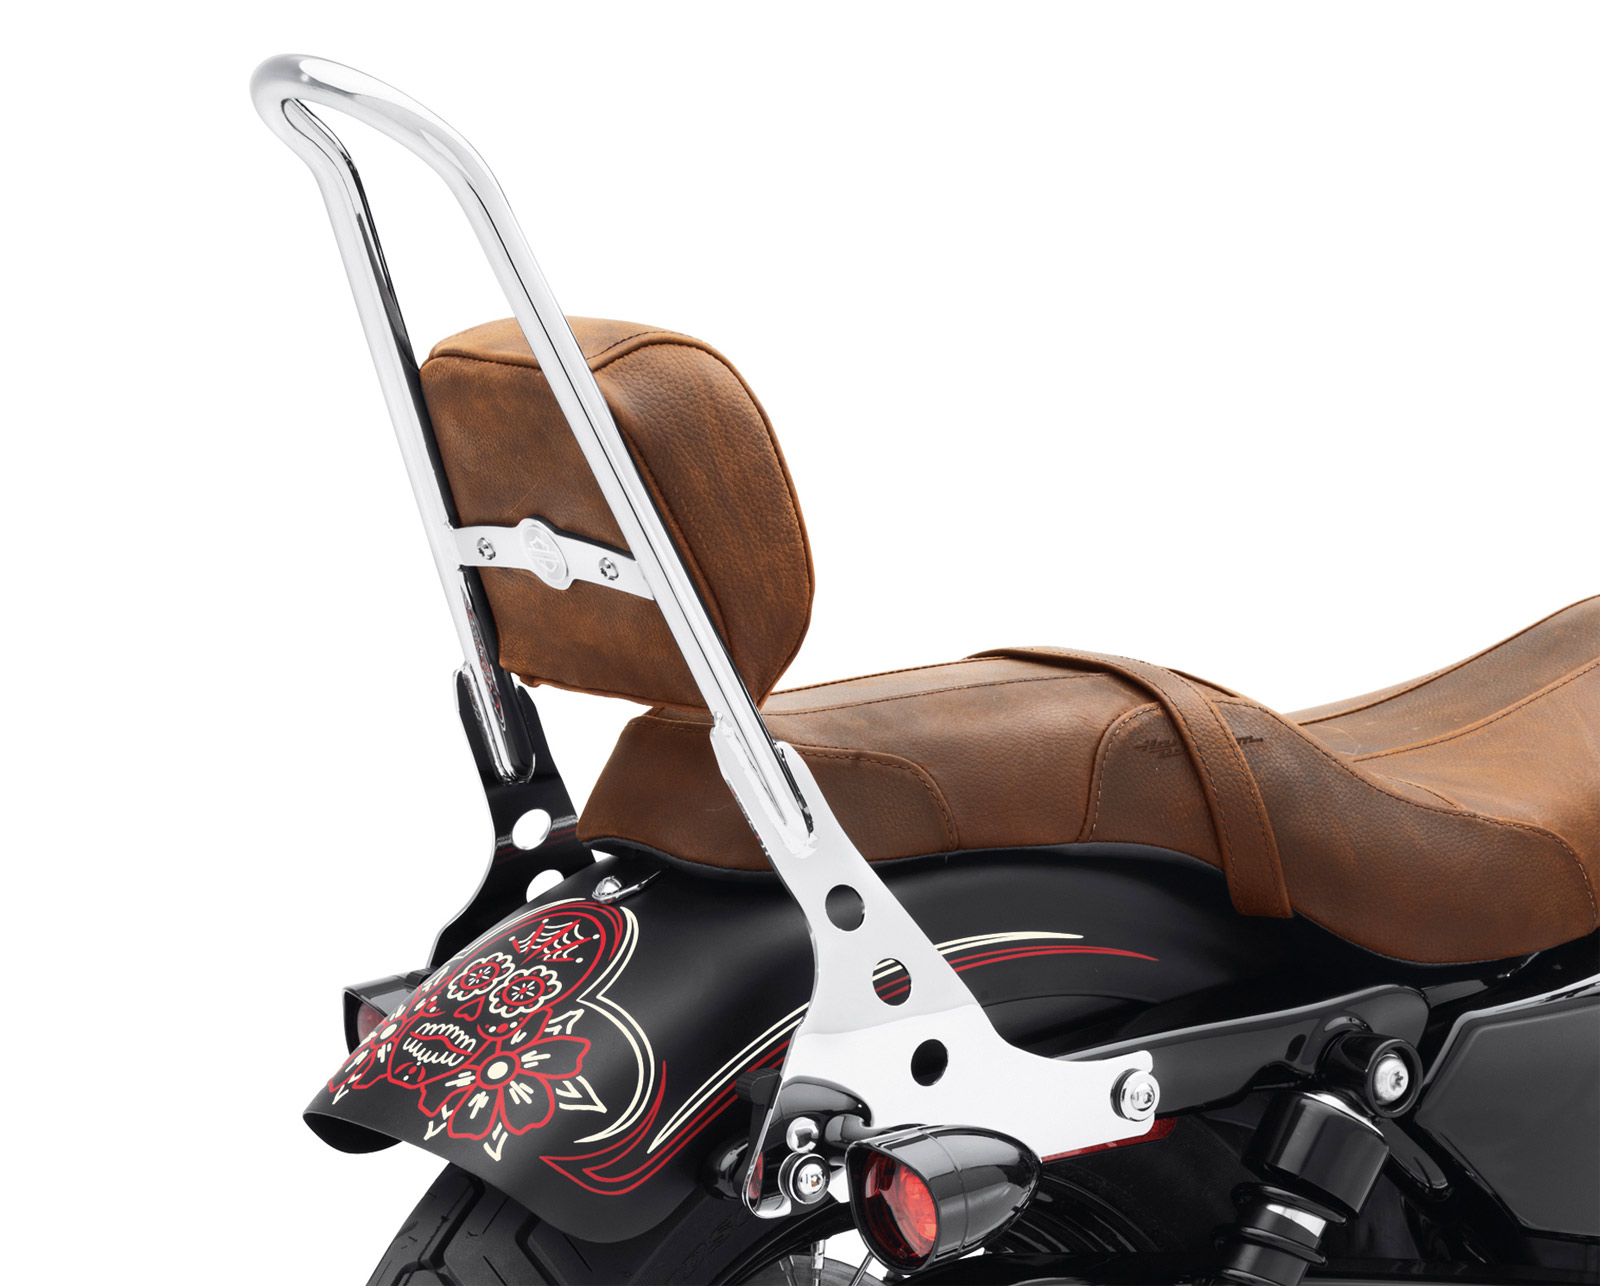 52300040 one piece detachable sissy bar upright chrome at thunderbike shop. Black Bedroom Furniture Sets. Home Design Ideas